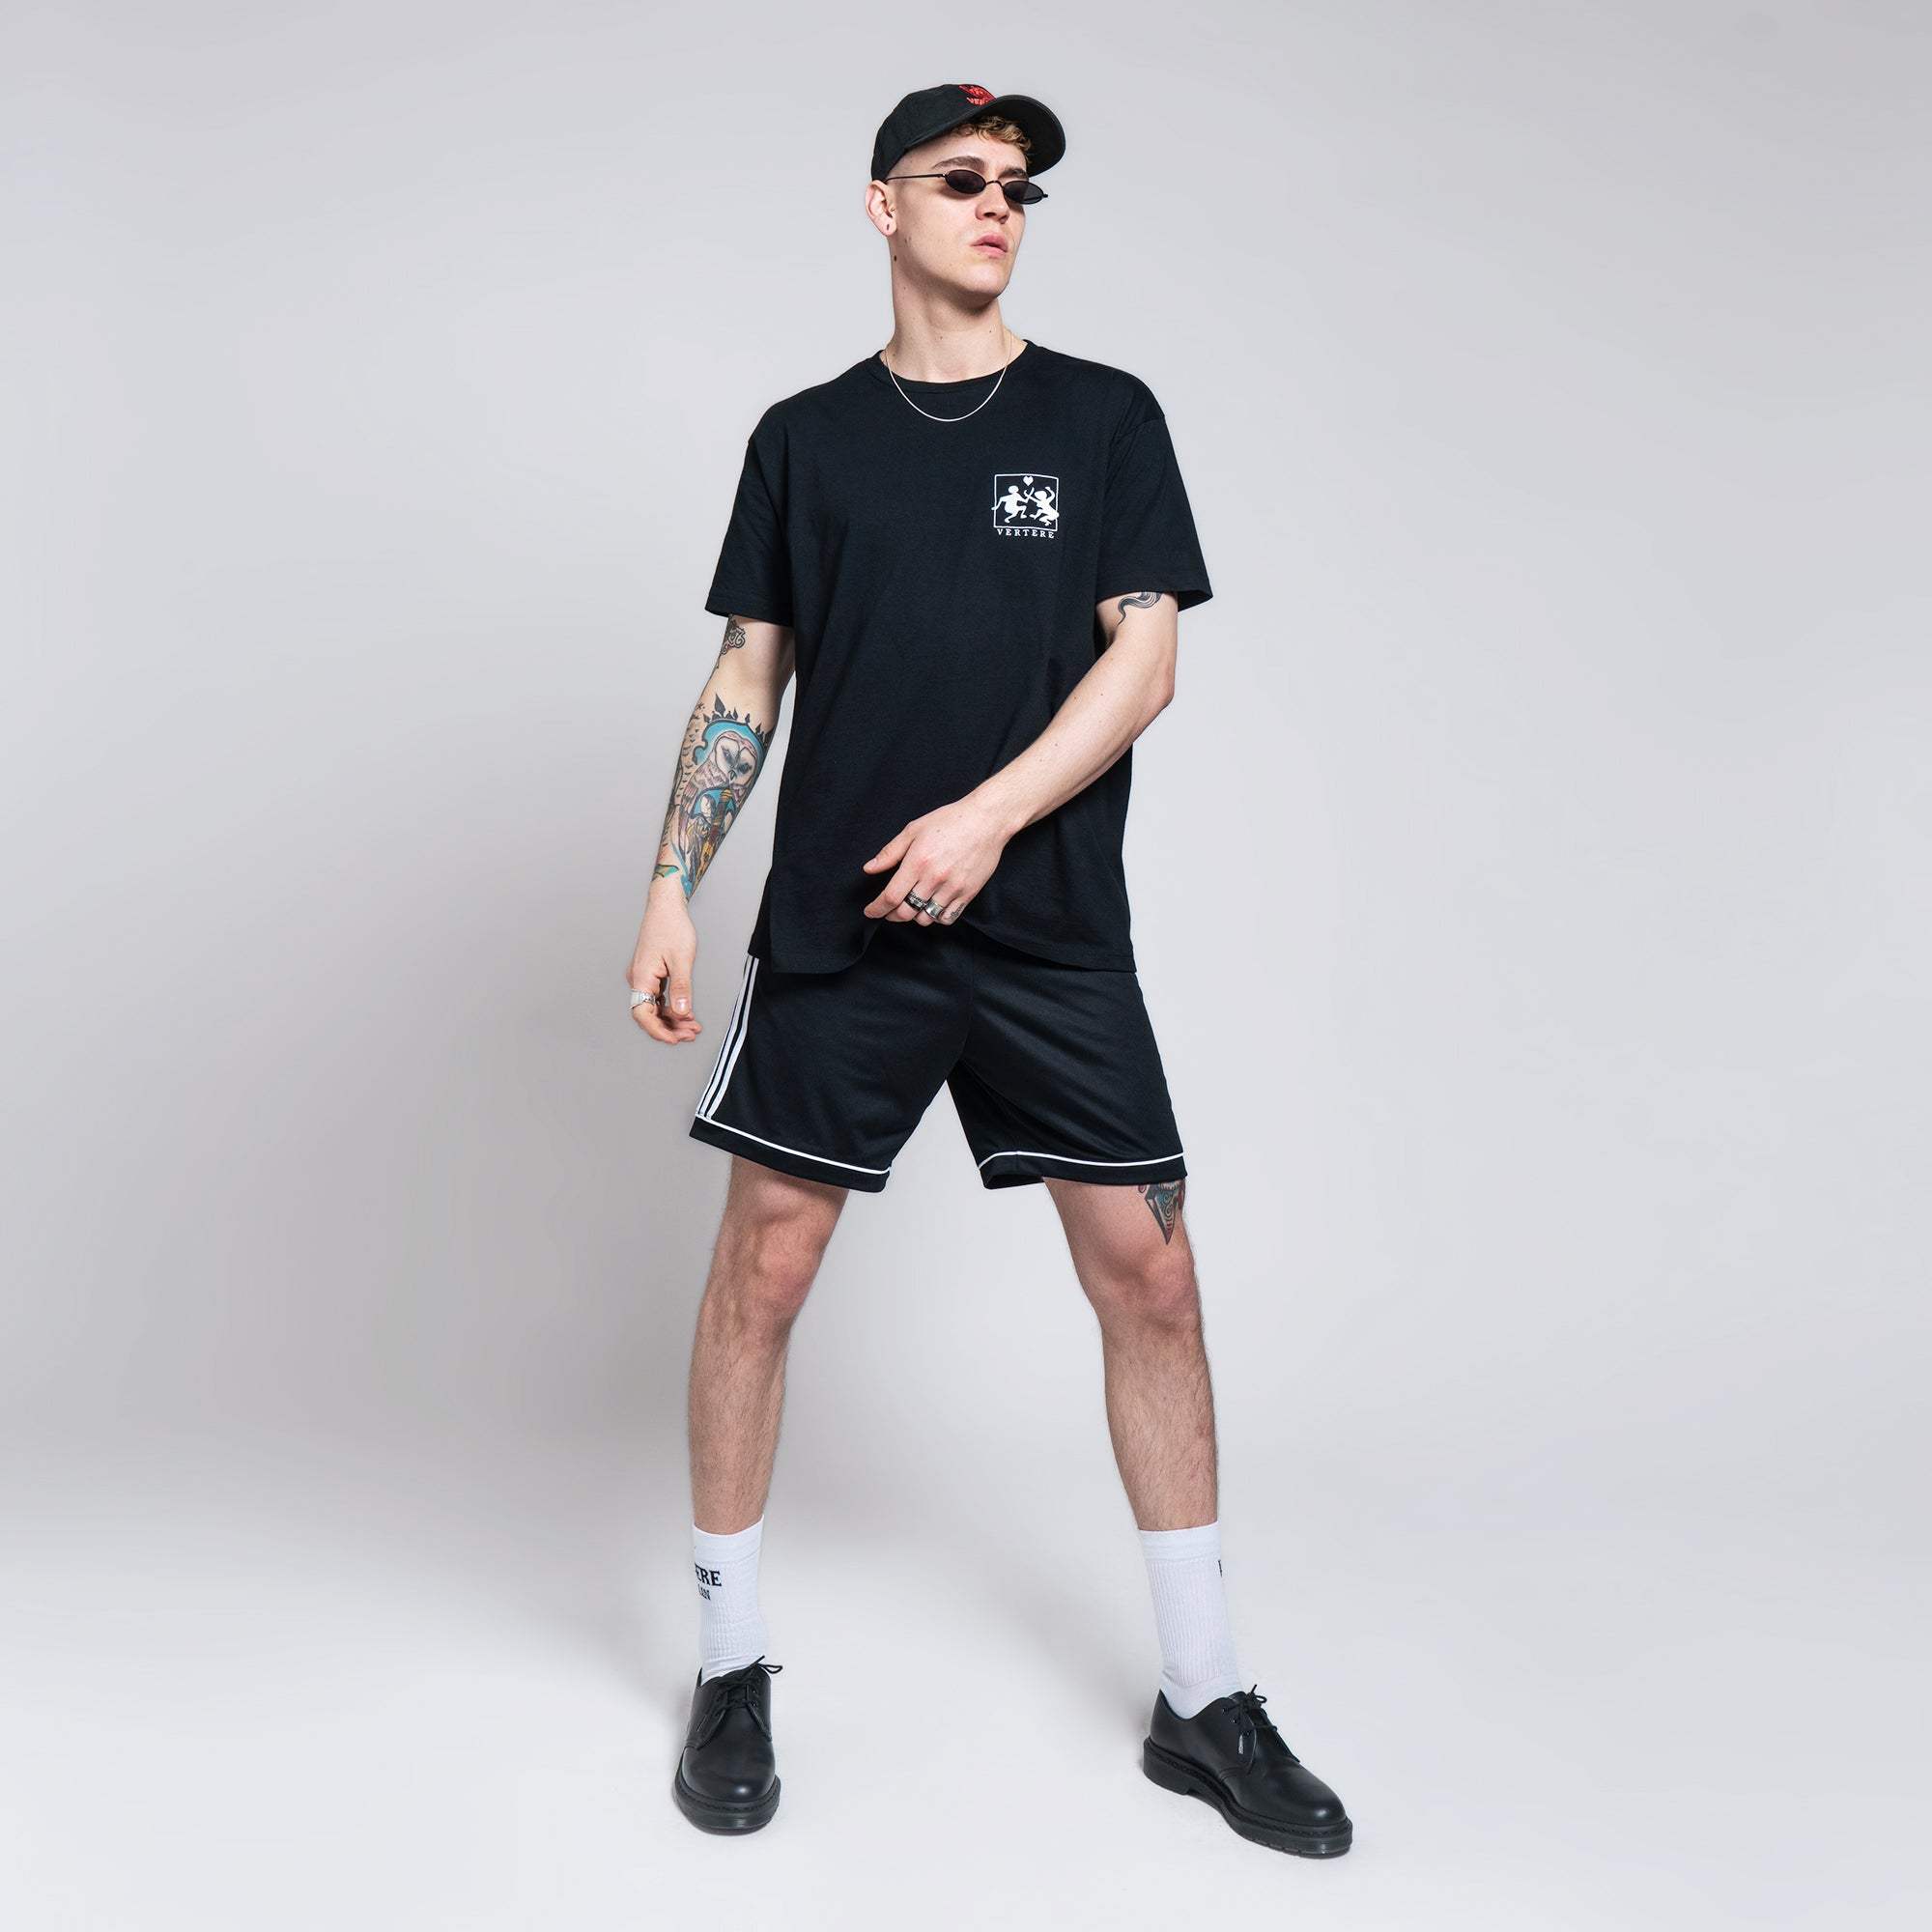 HEALTHY MIND T-SHIRT - BLACK